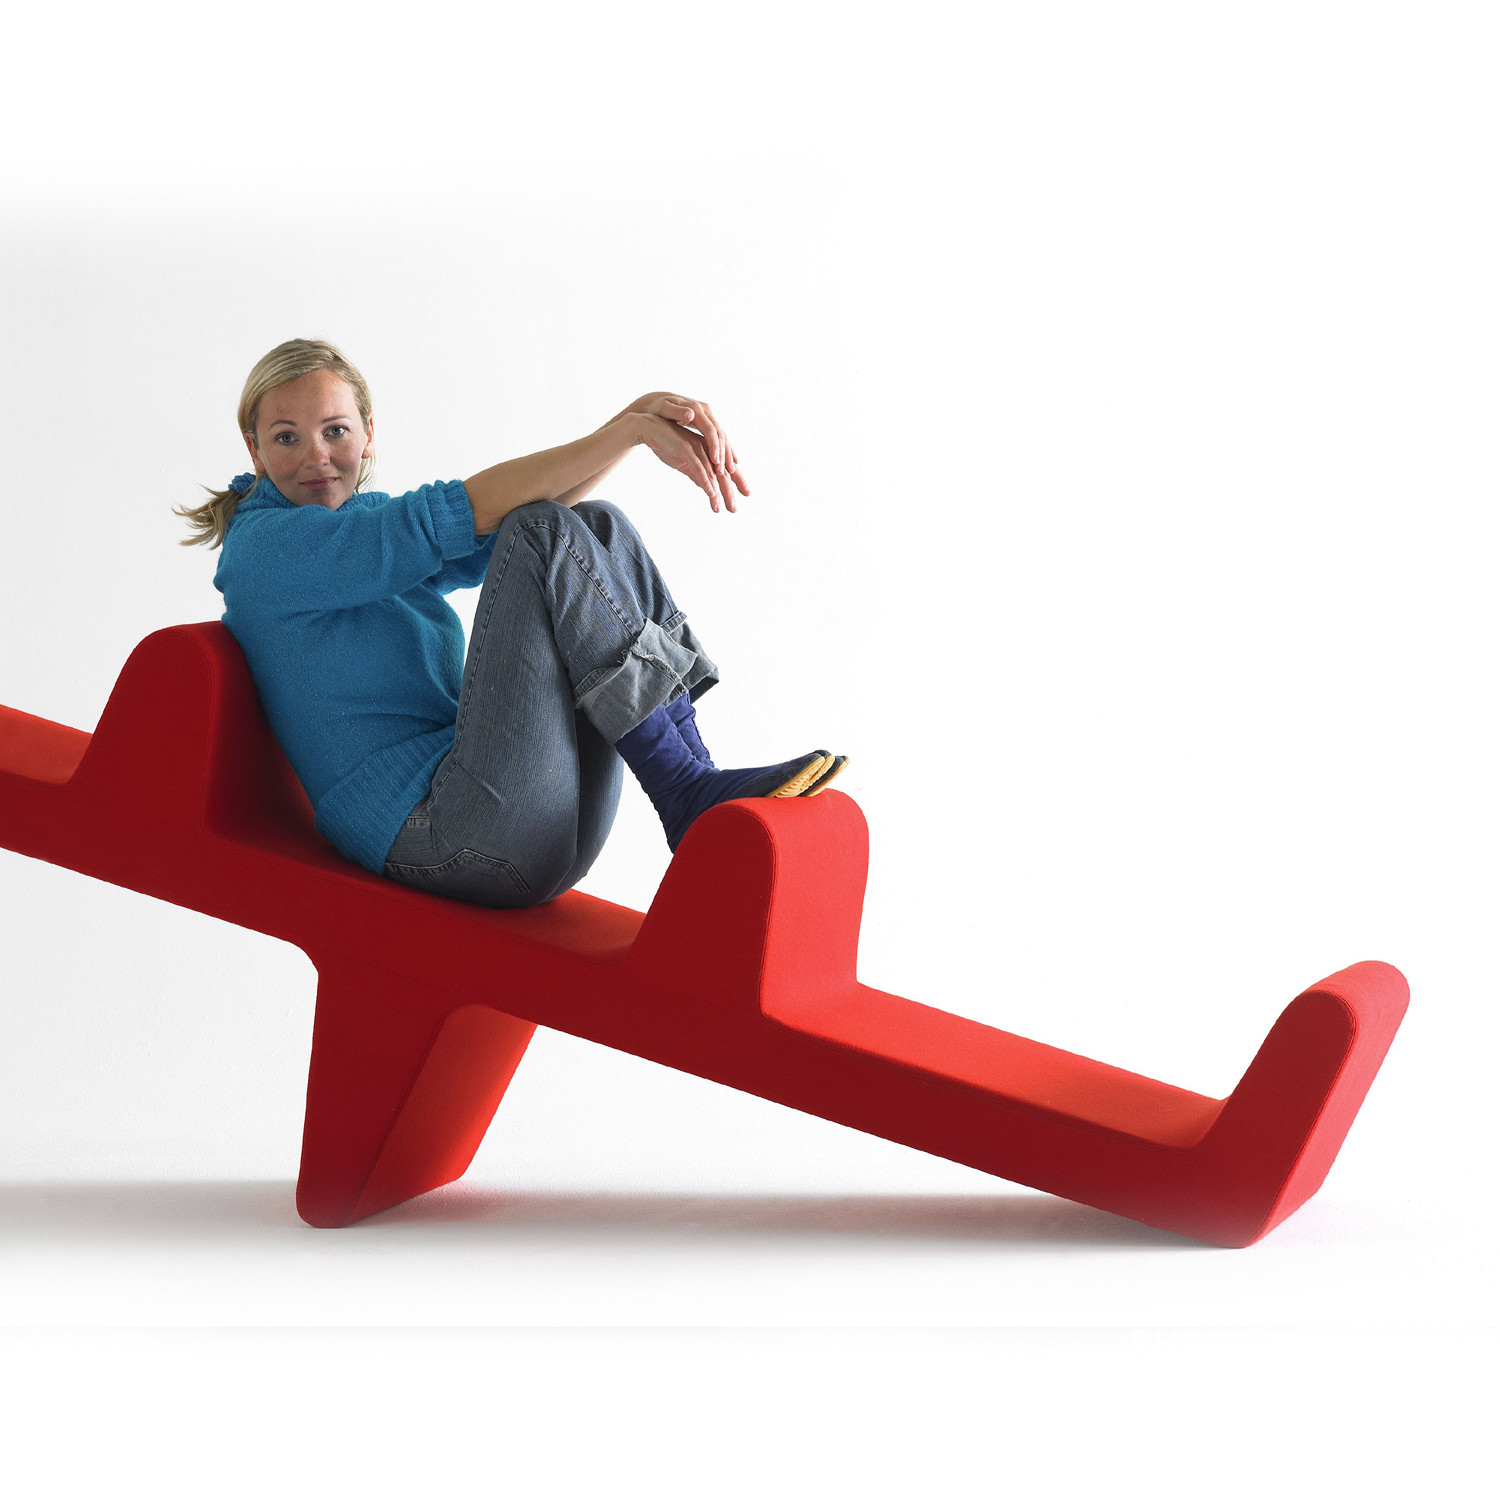 EJ 2800 Seesaw Interactive Bench